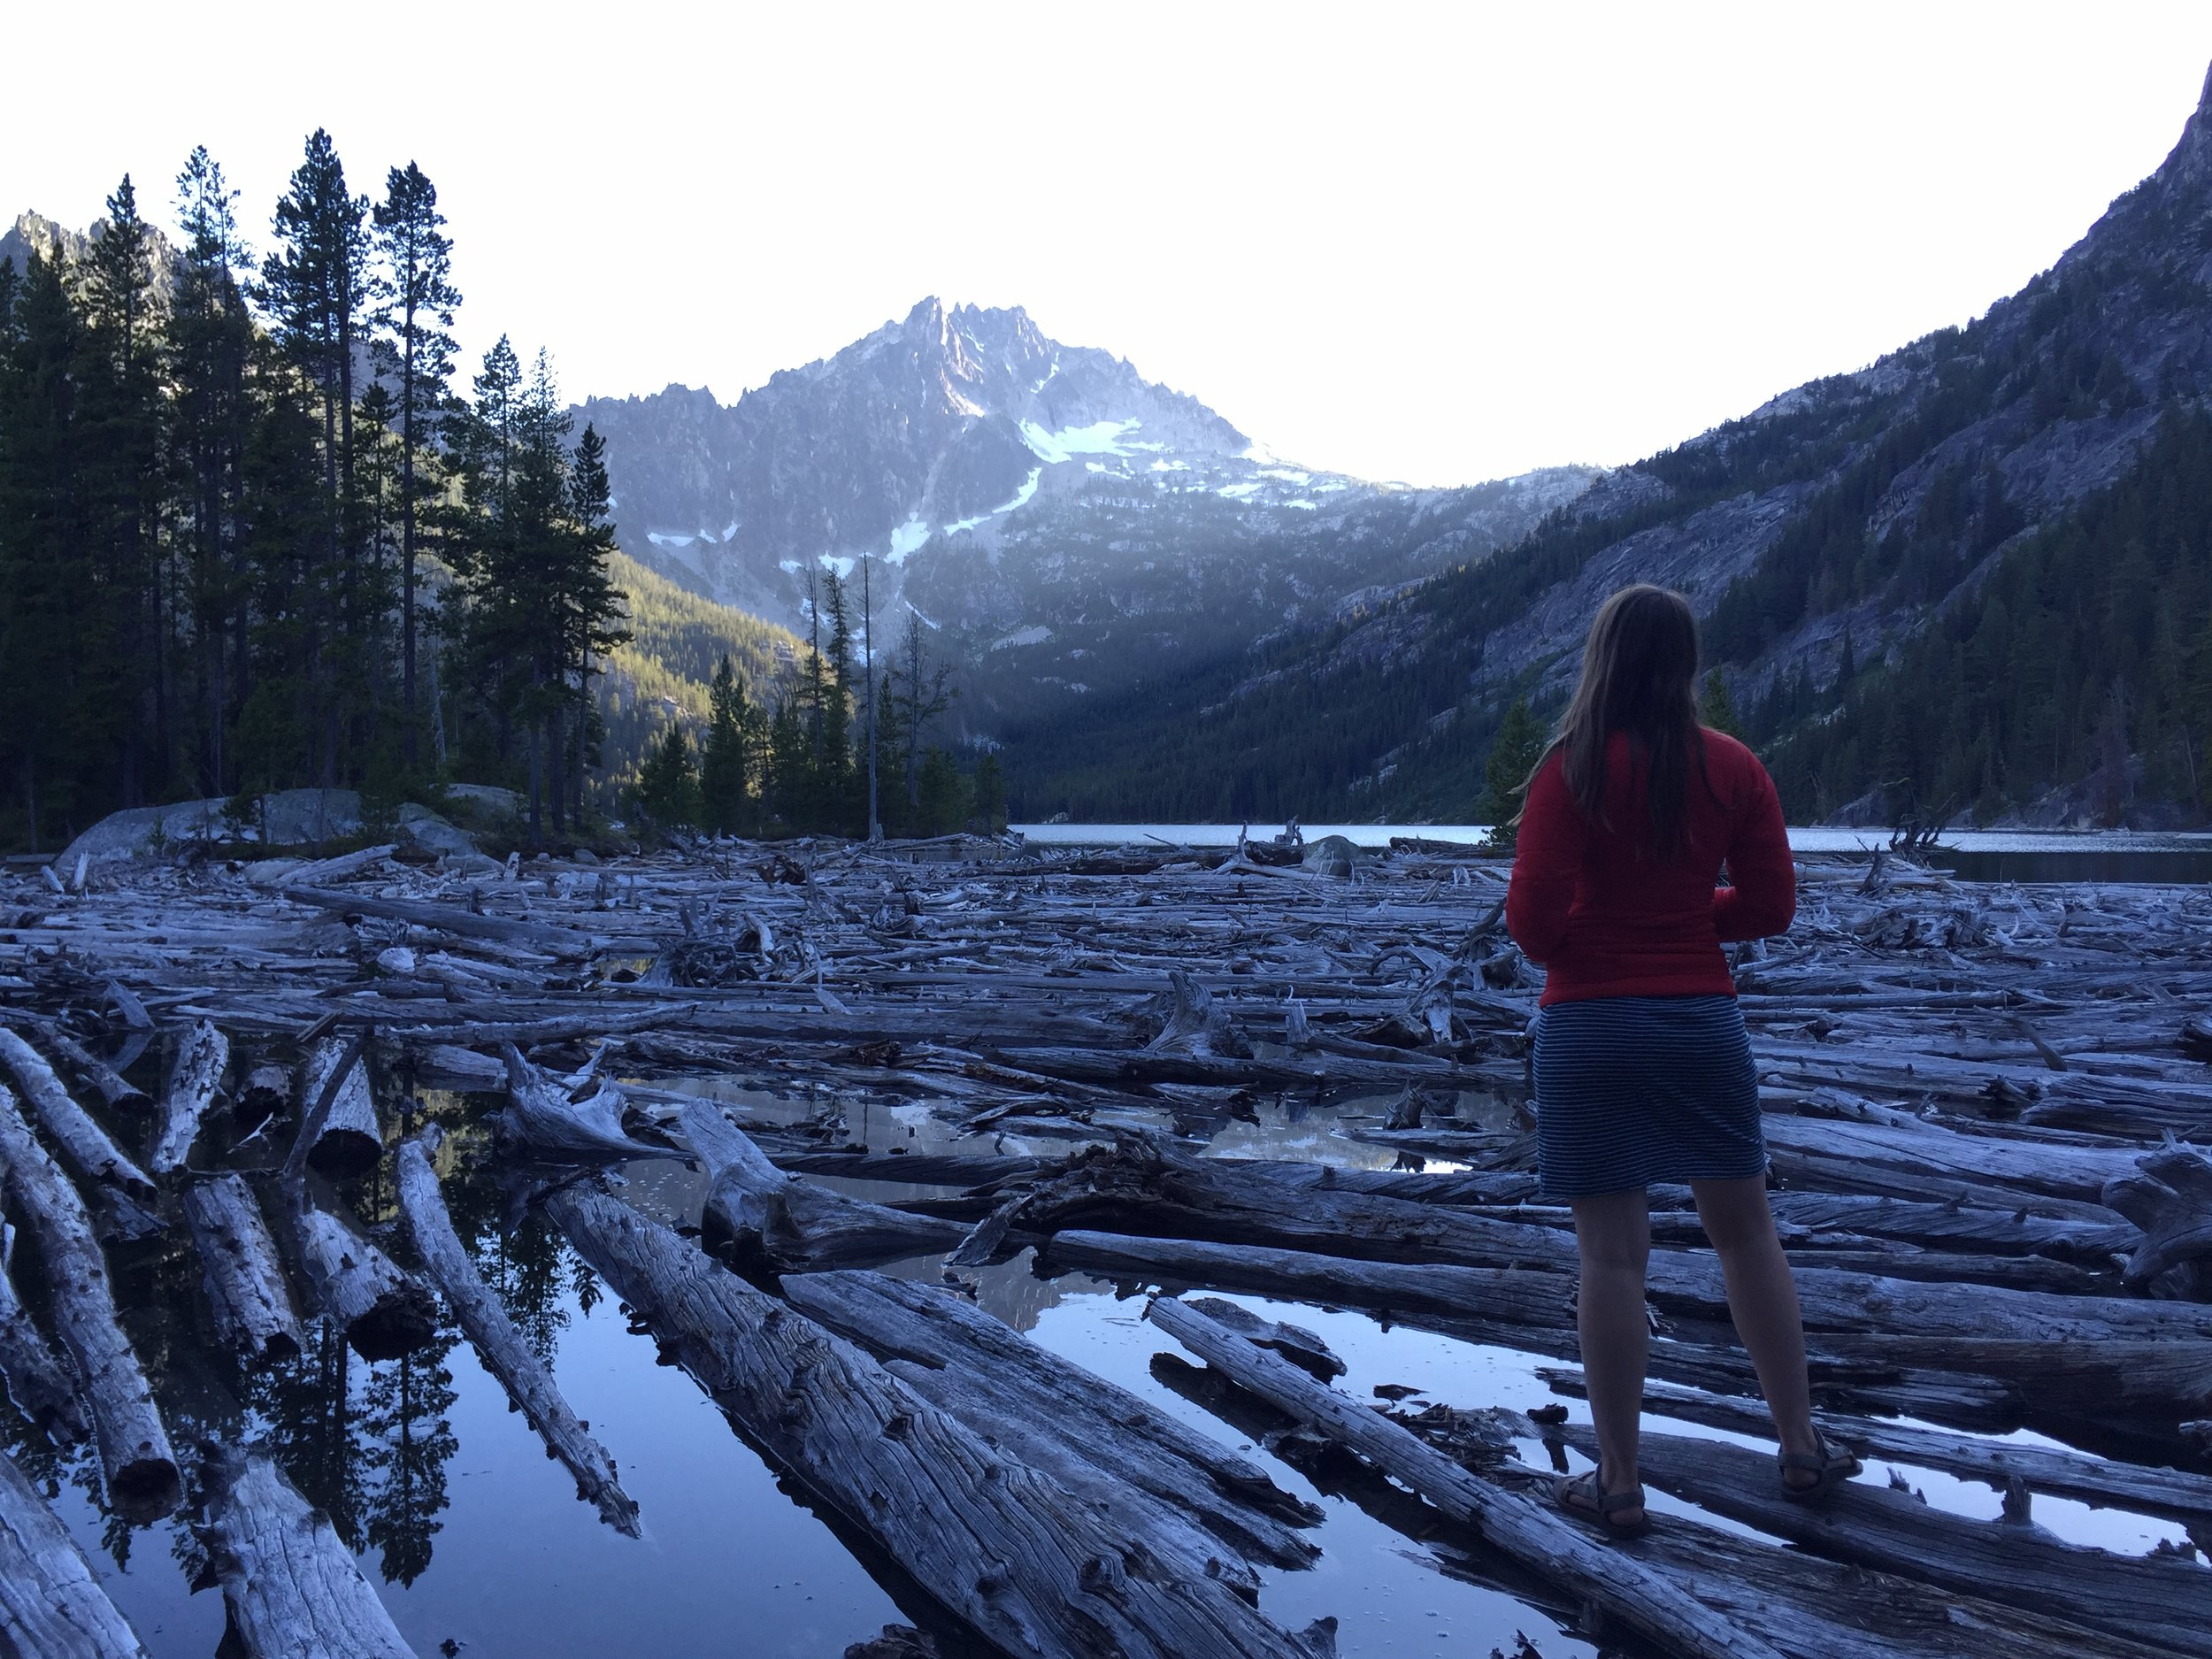 The Alpine Lakes Wilderness in Washington State, which has received funding from LWCF for trail maintenance and conservation work along two lakes.